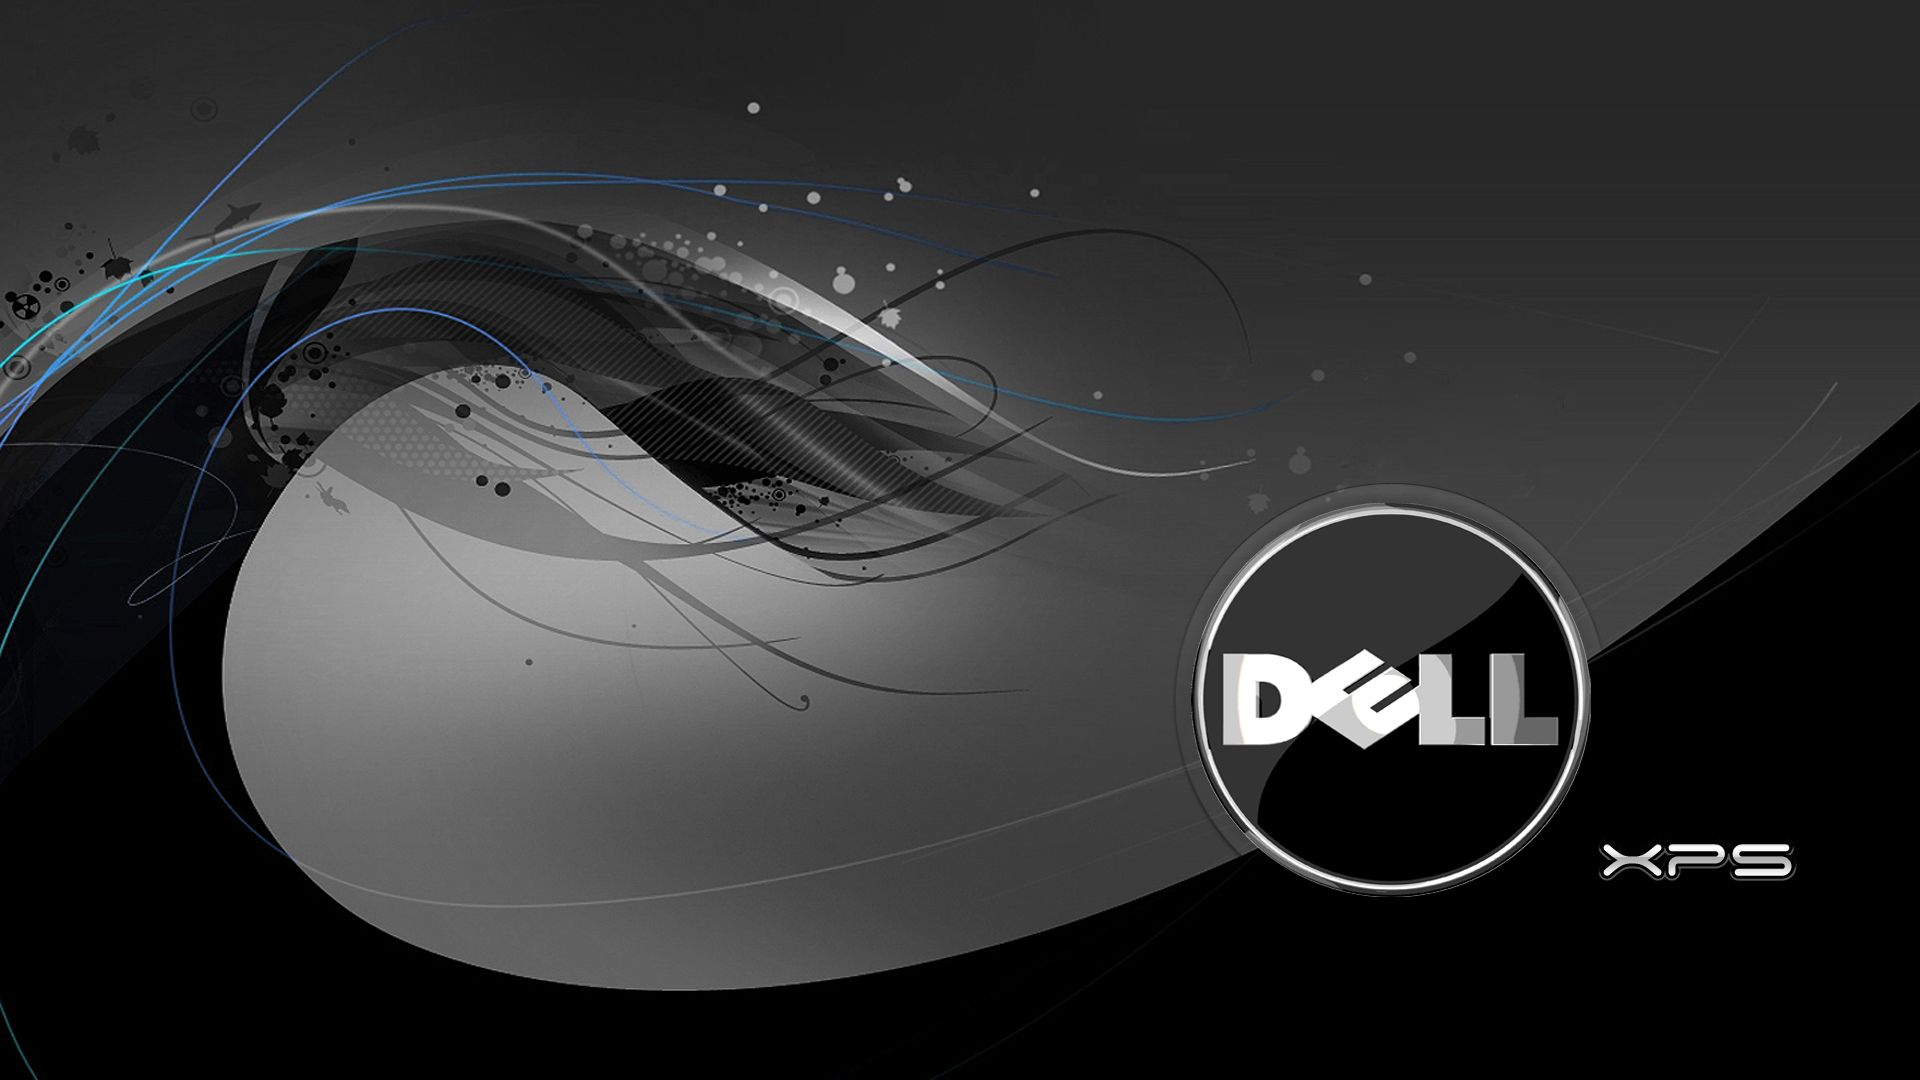 Dell Wallpapers For Download 19201080 Dell Wallpapers 54 1920x1080